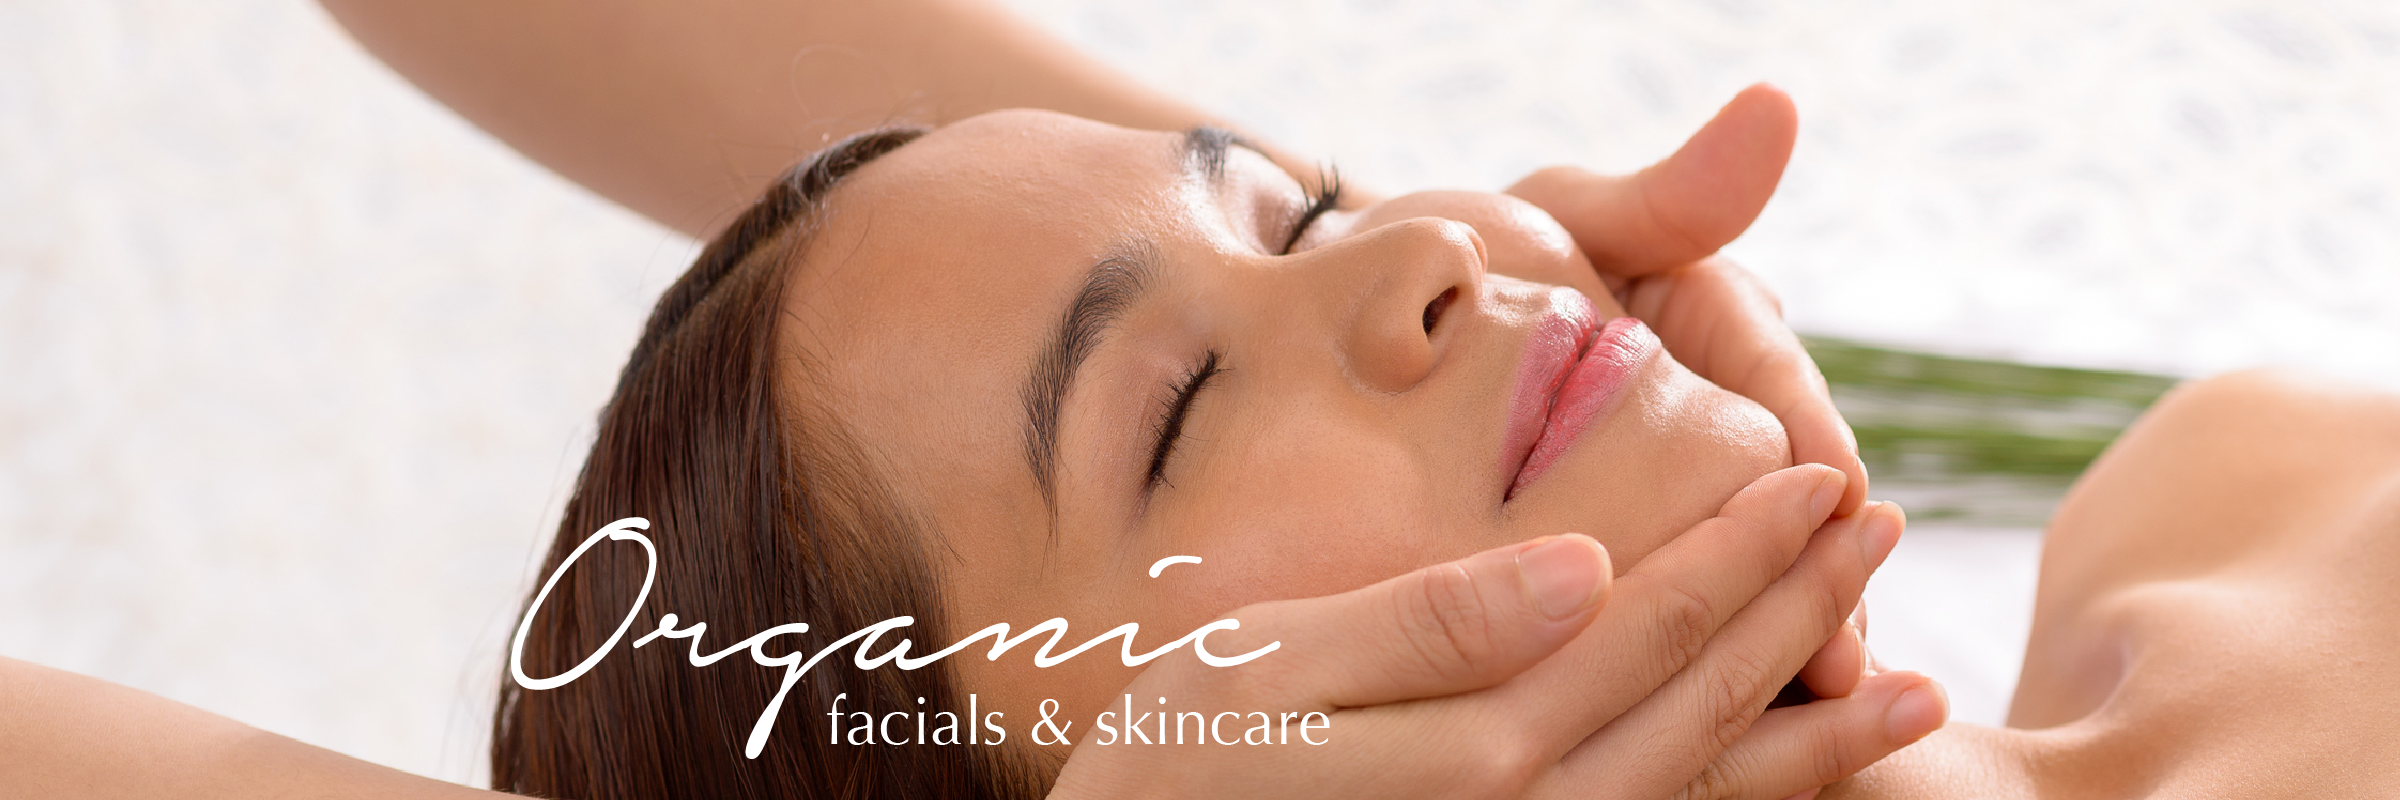 Organic Facial at Vitality Spa in Old Lyme CT